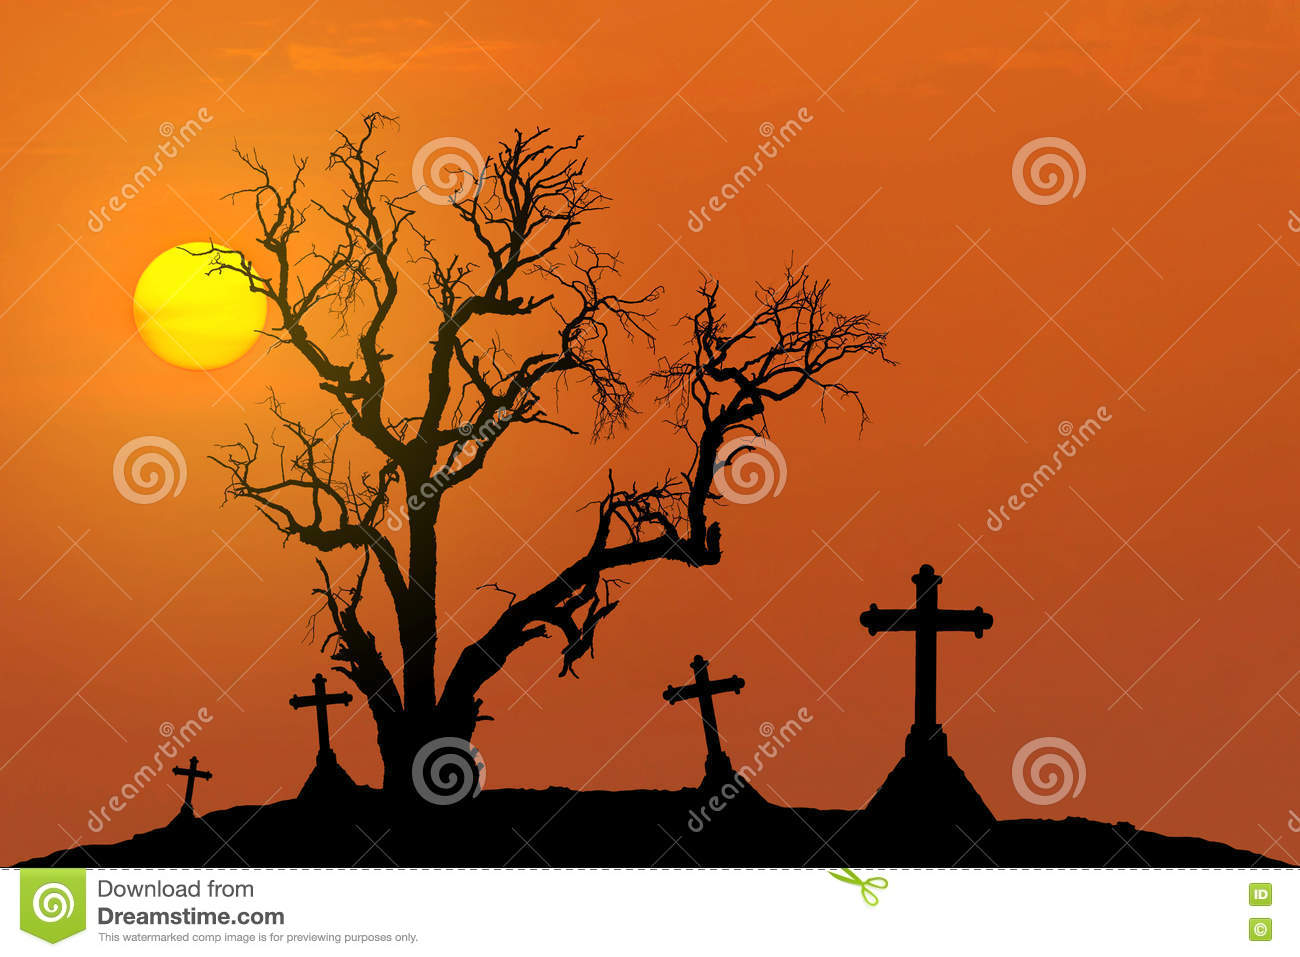 Halloween concept background with scary silhouette dead tree and spooky silhouette crosses with full moon